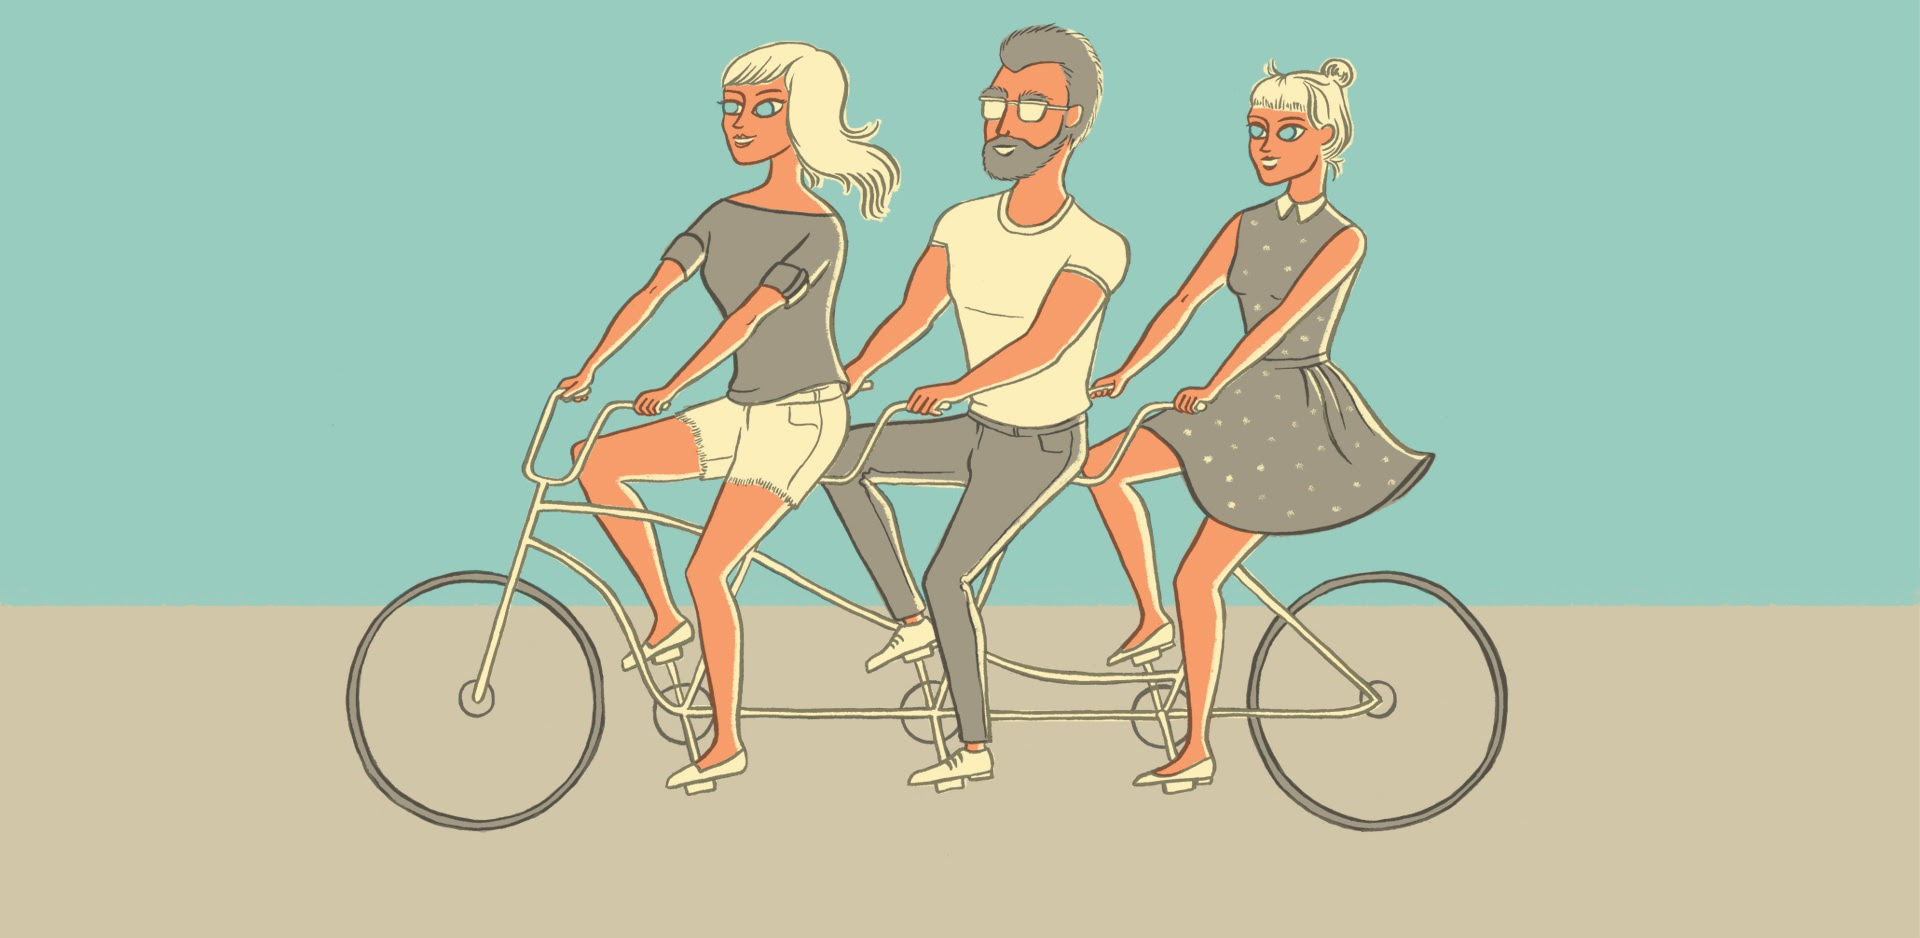 Graphic: poly triad on bicycle built for 3